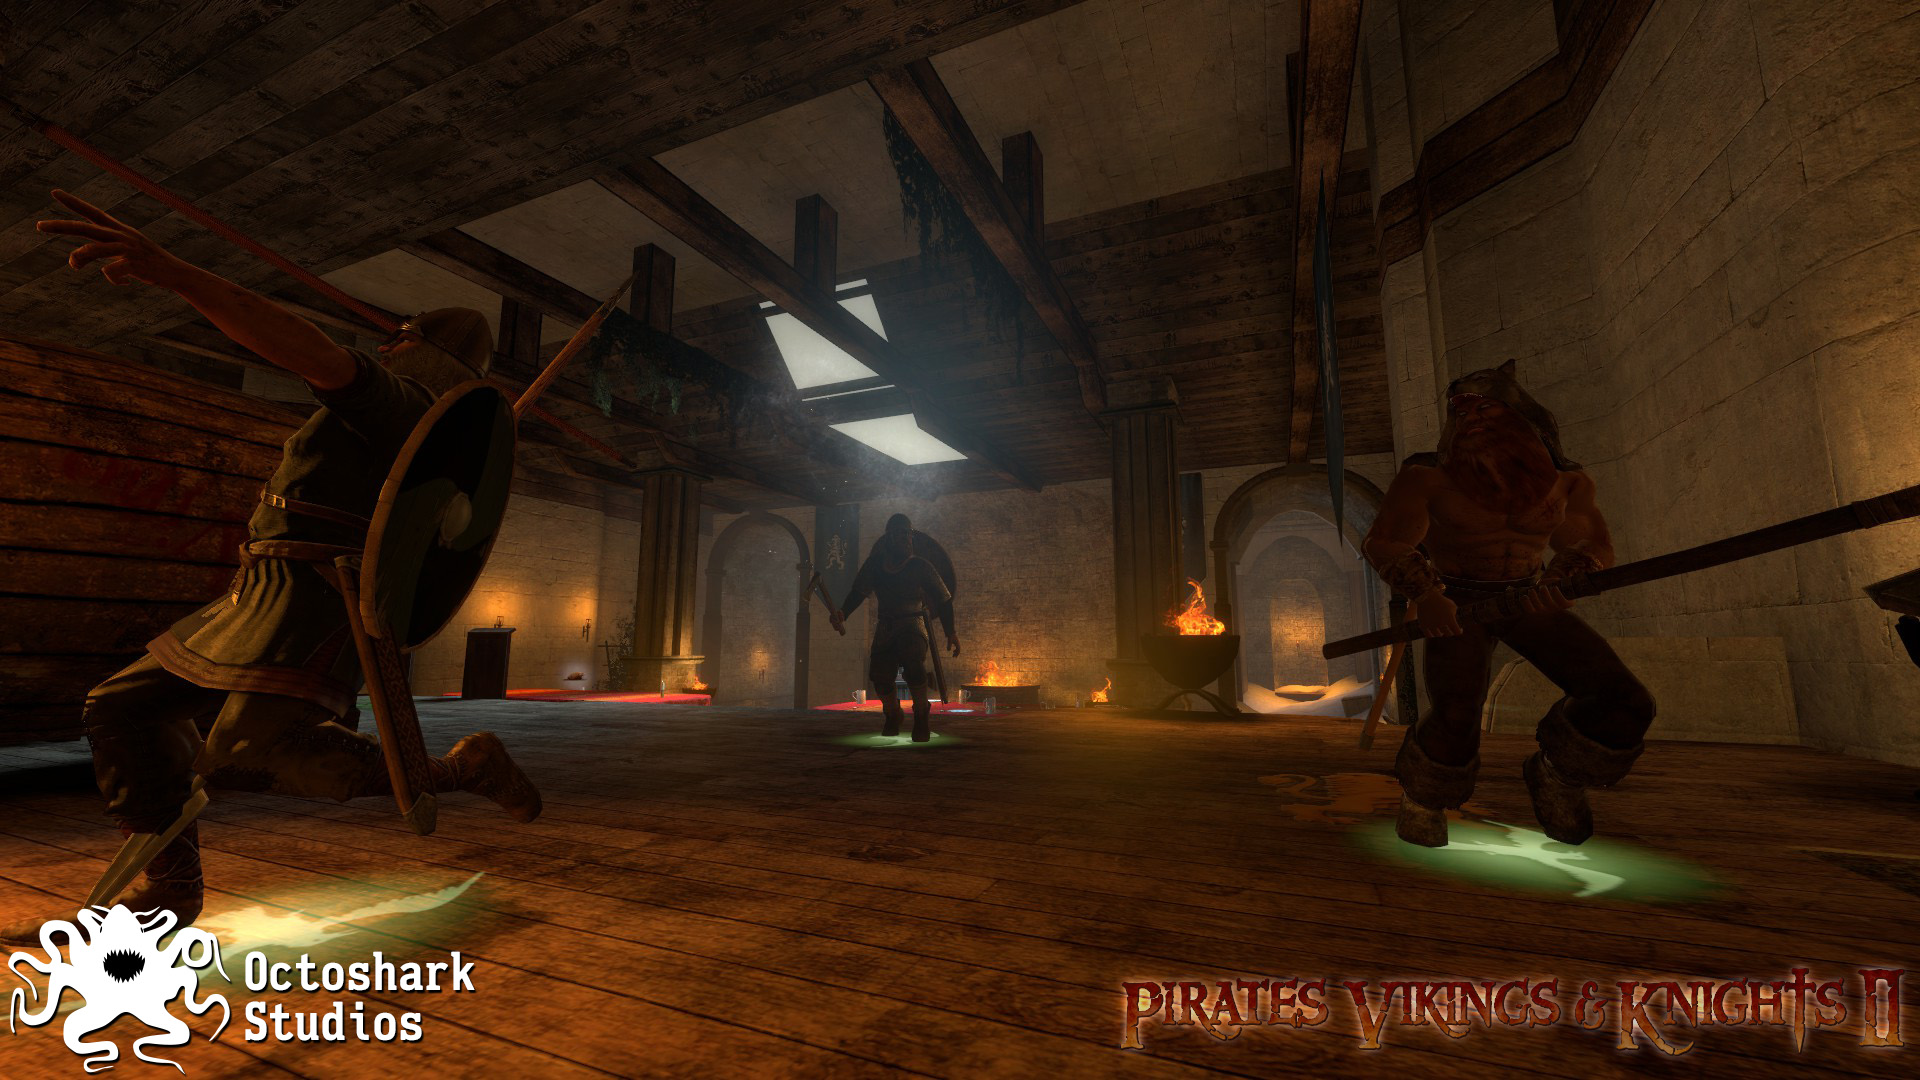 Pirates, Vikings, and Knights II screenshot